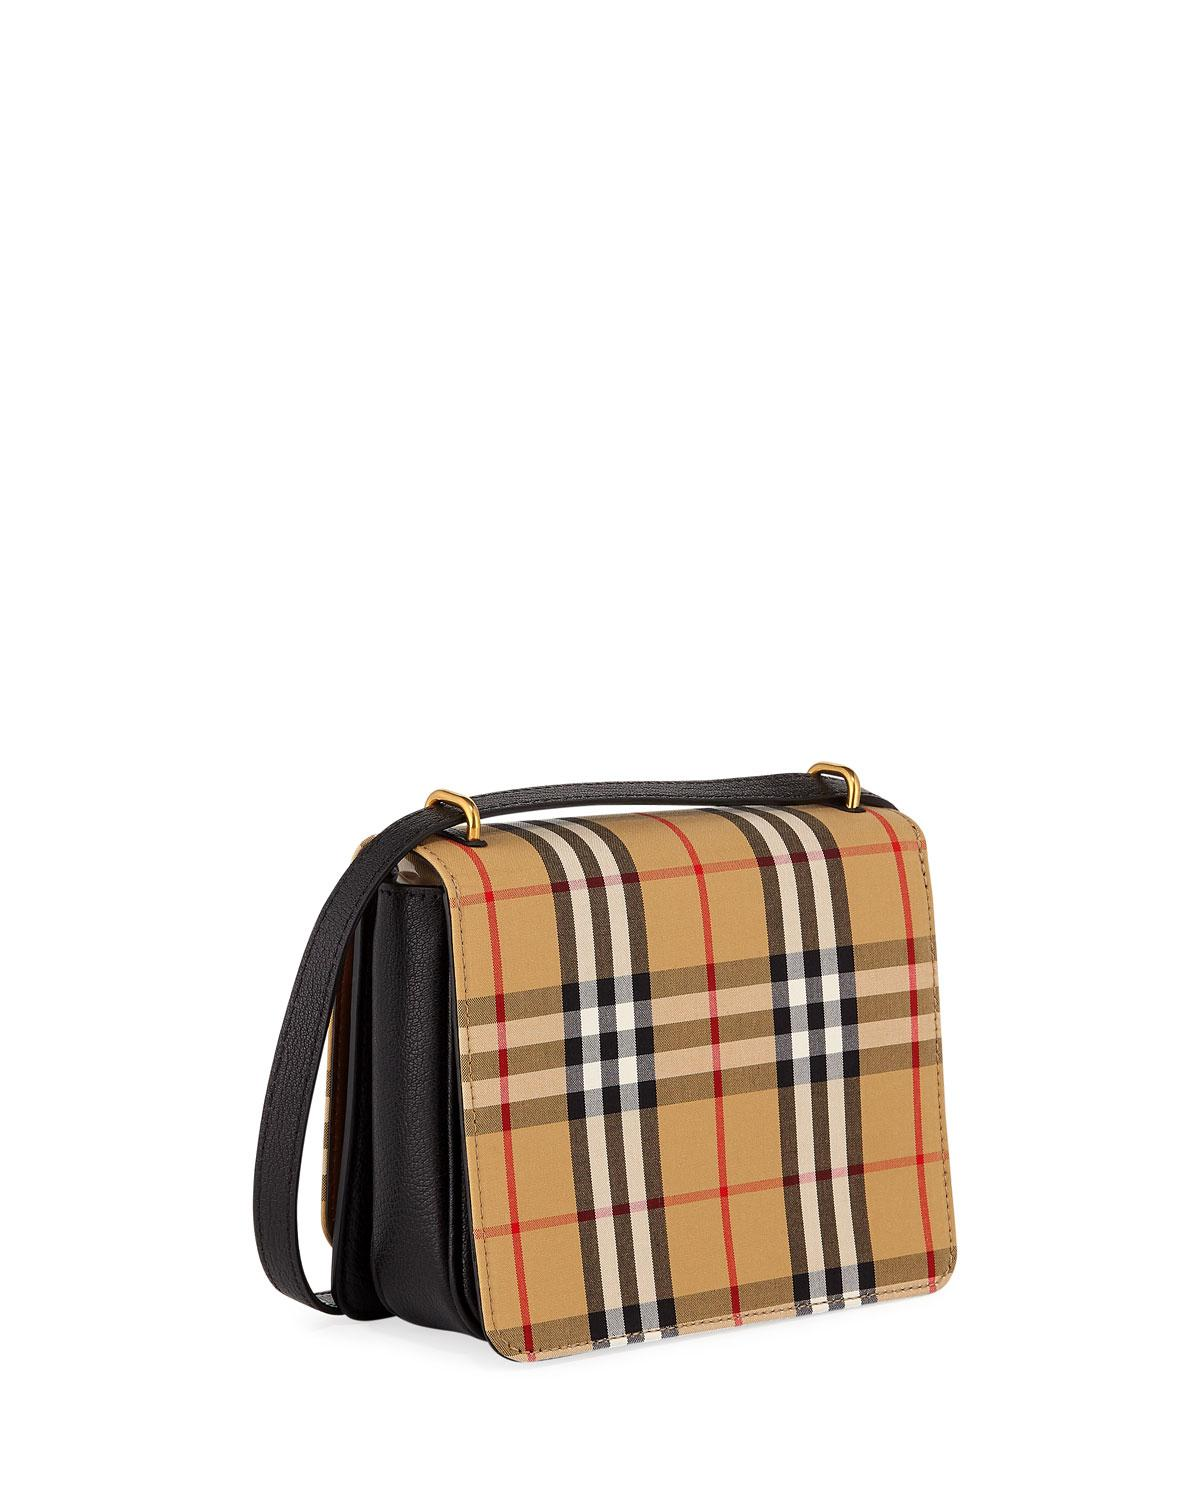 Burberry Canvas Small D-ring Check Crossbody Messenger Bag in Brown - Lyst